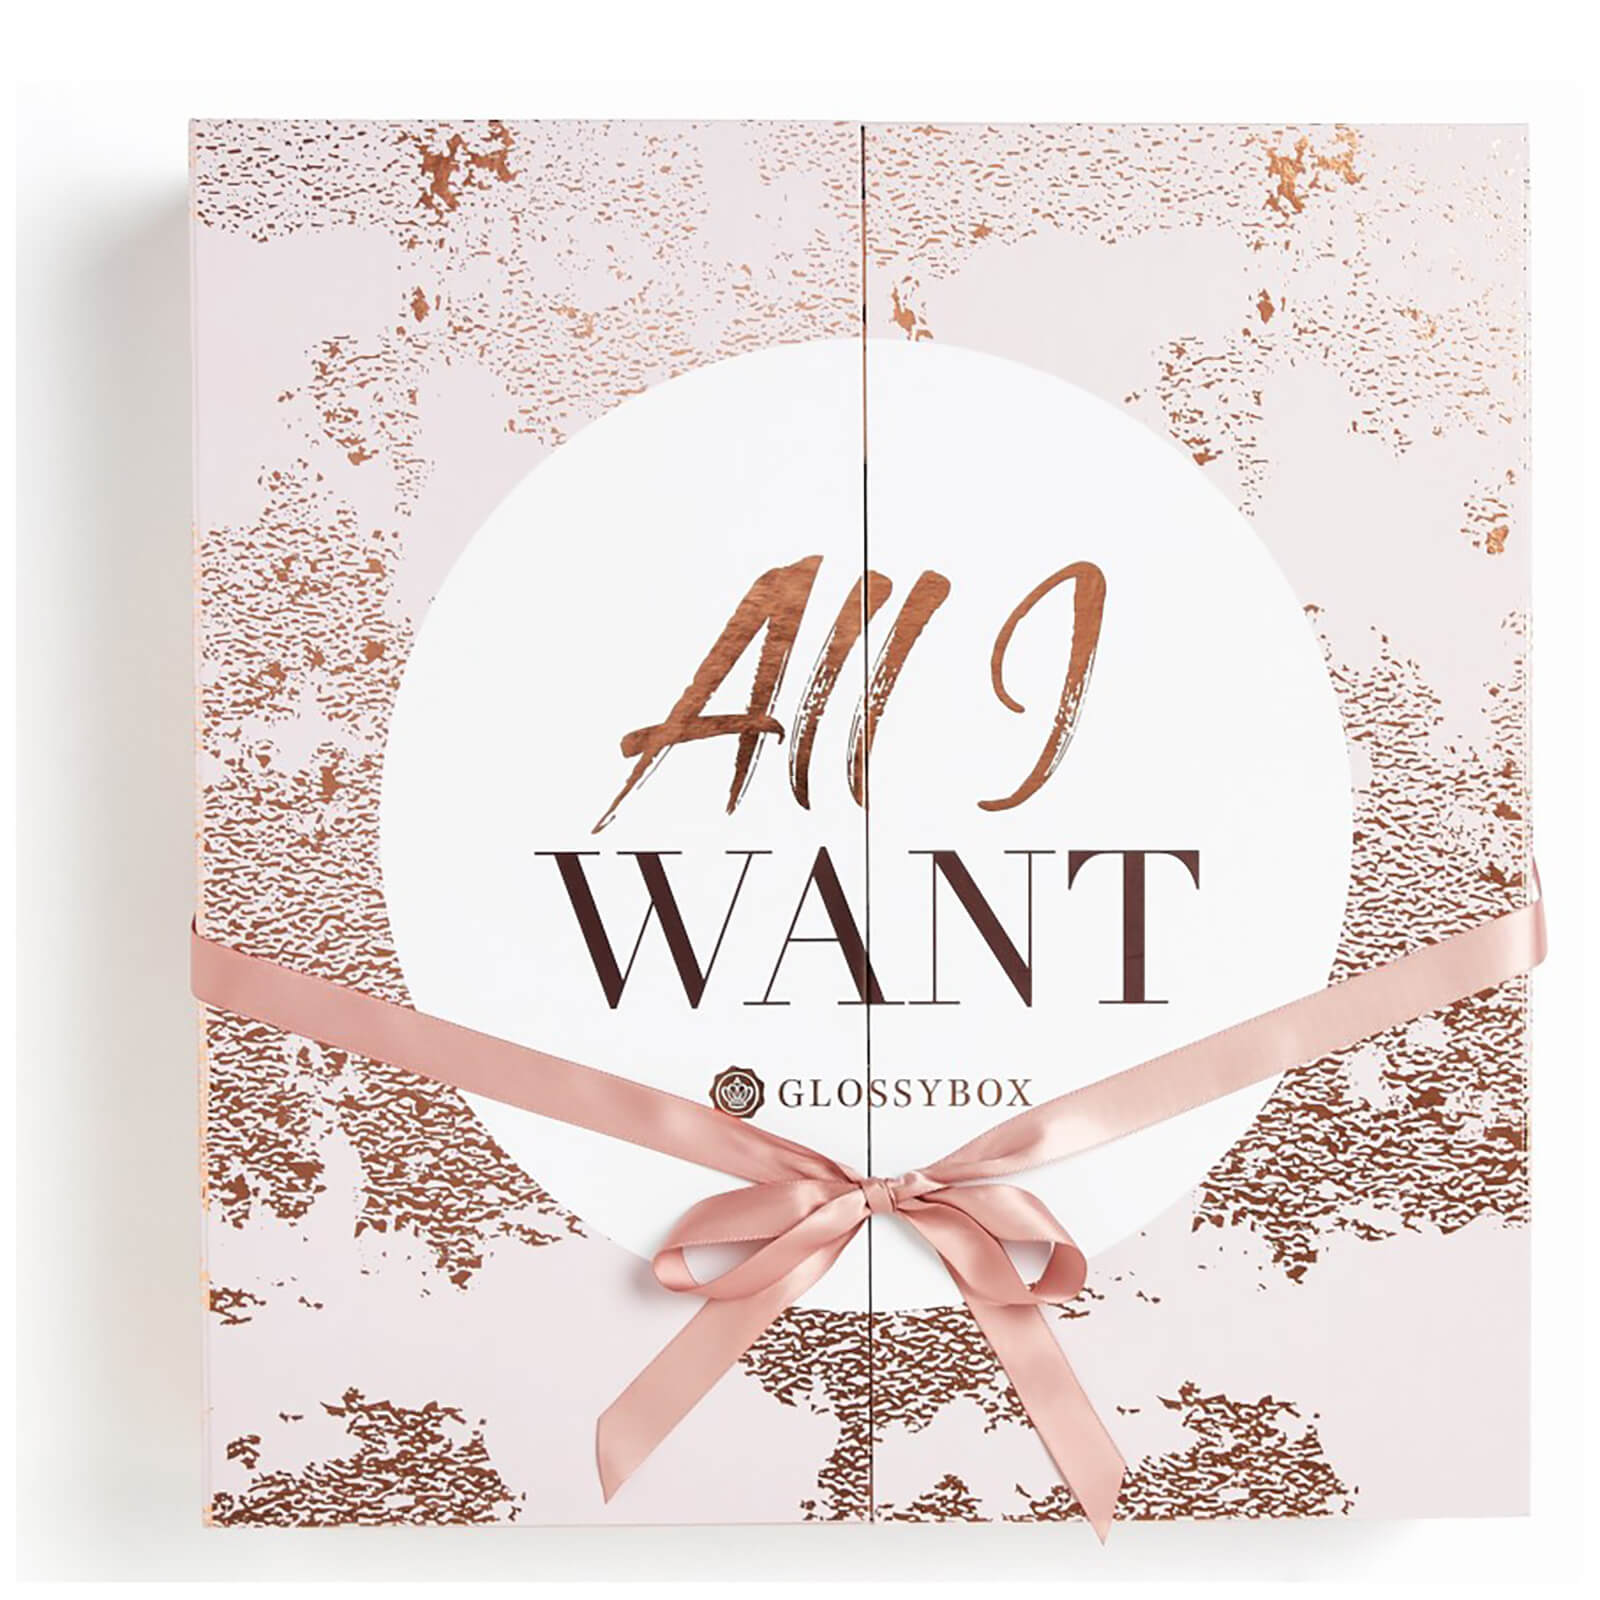 f04c7406074 GLOSSYBOX Beauty Advent Calendar 2018 | GLOSSYBOX